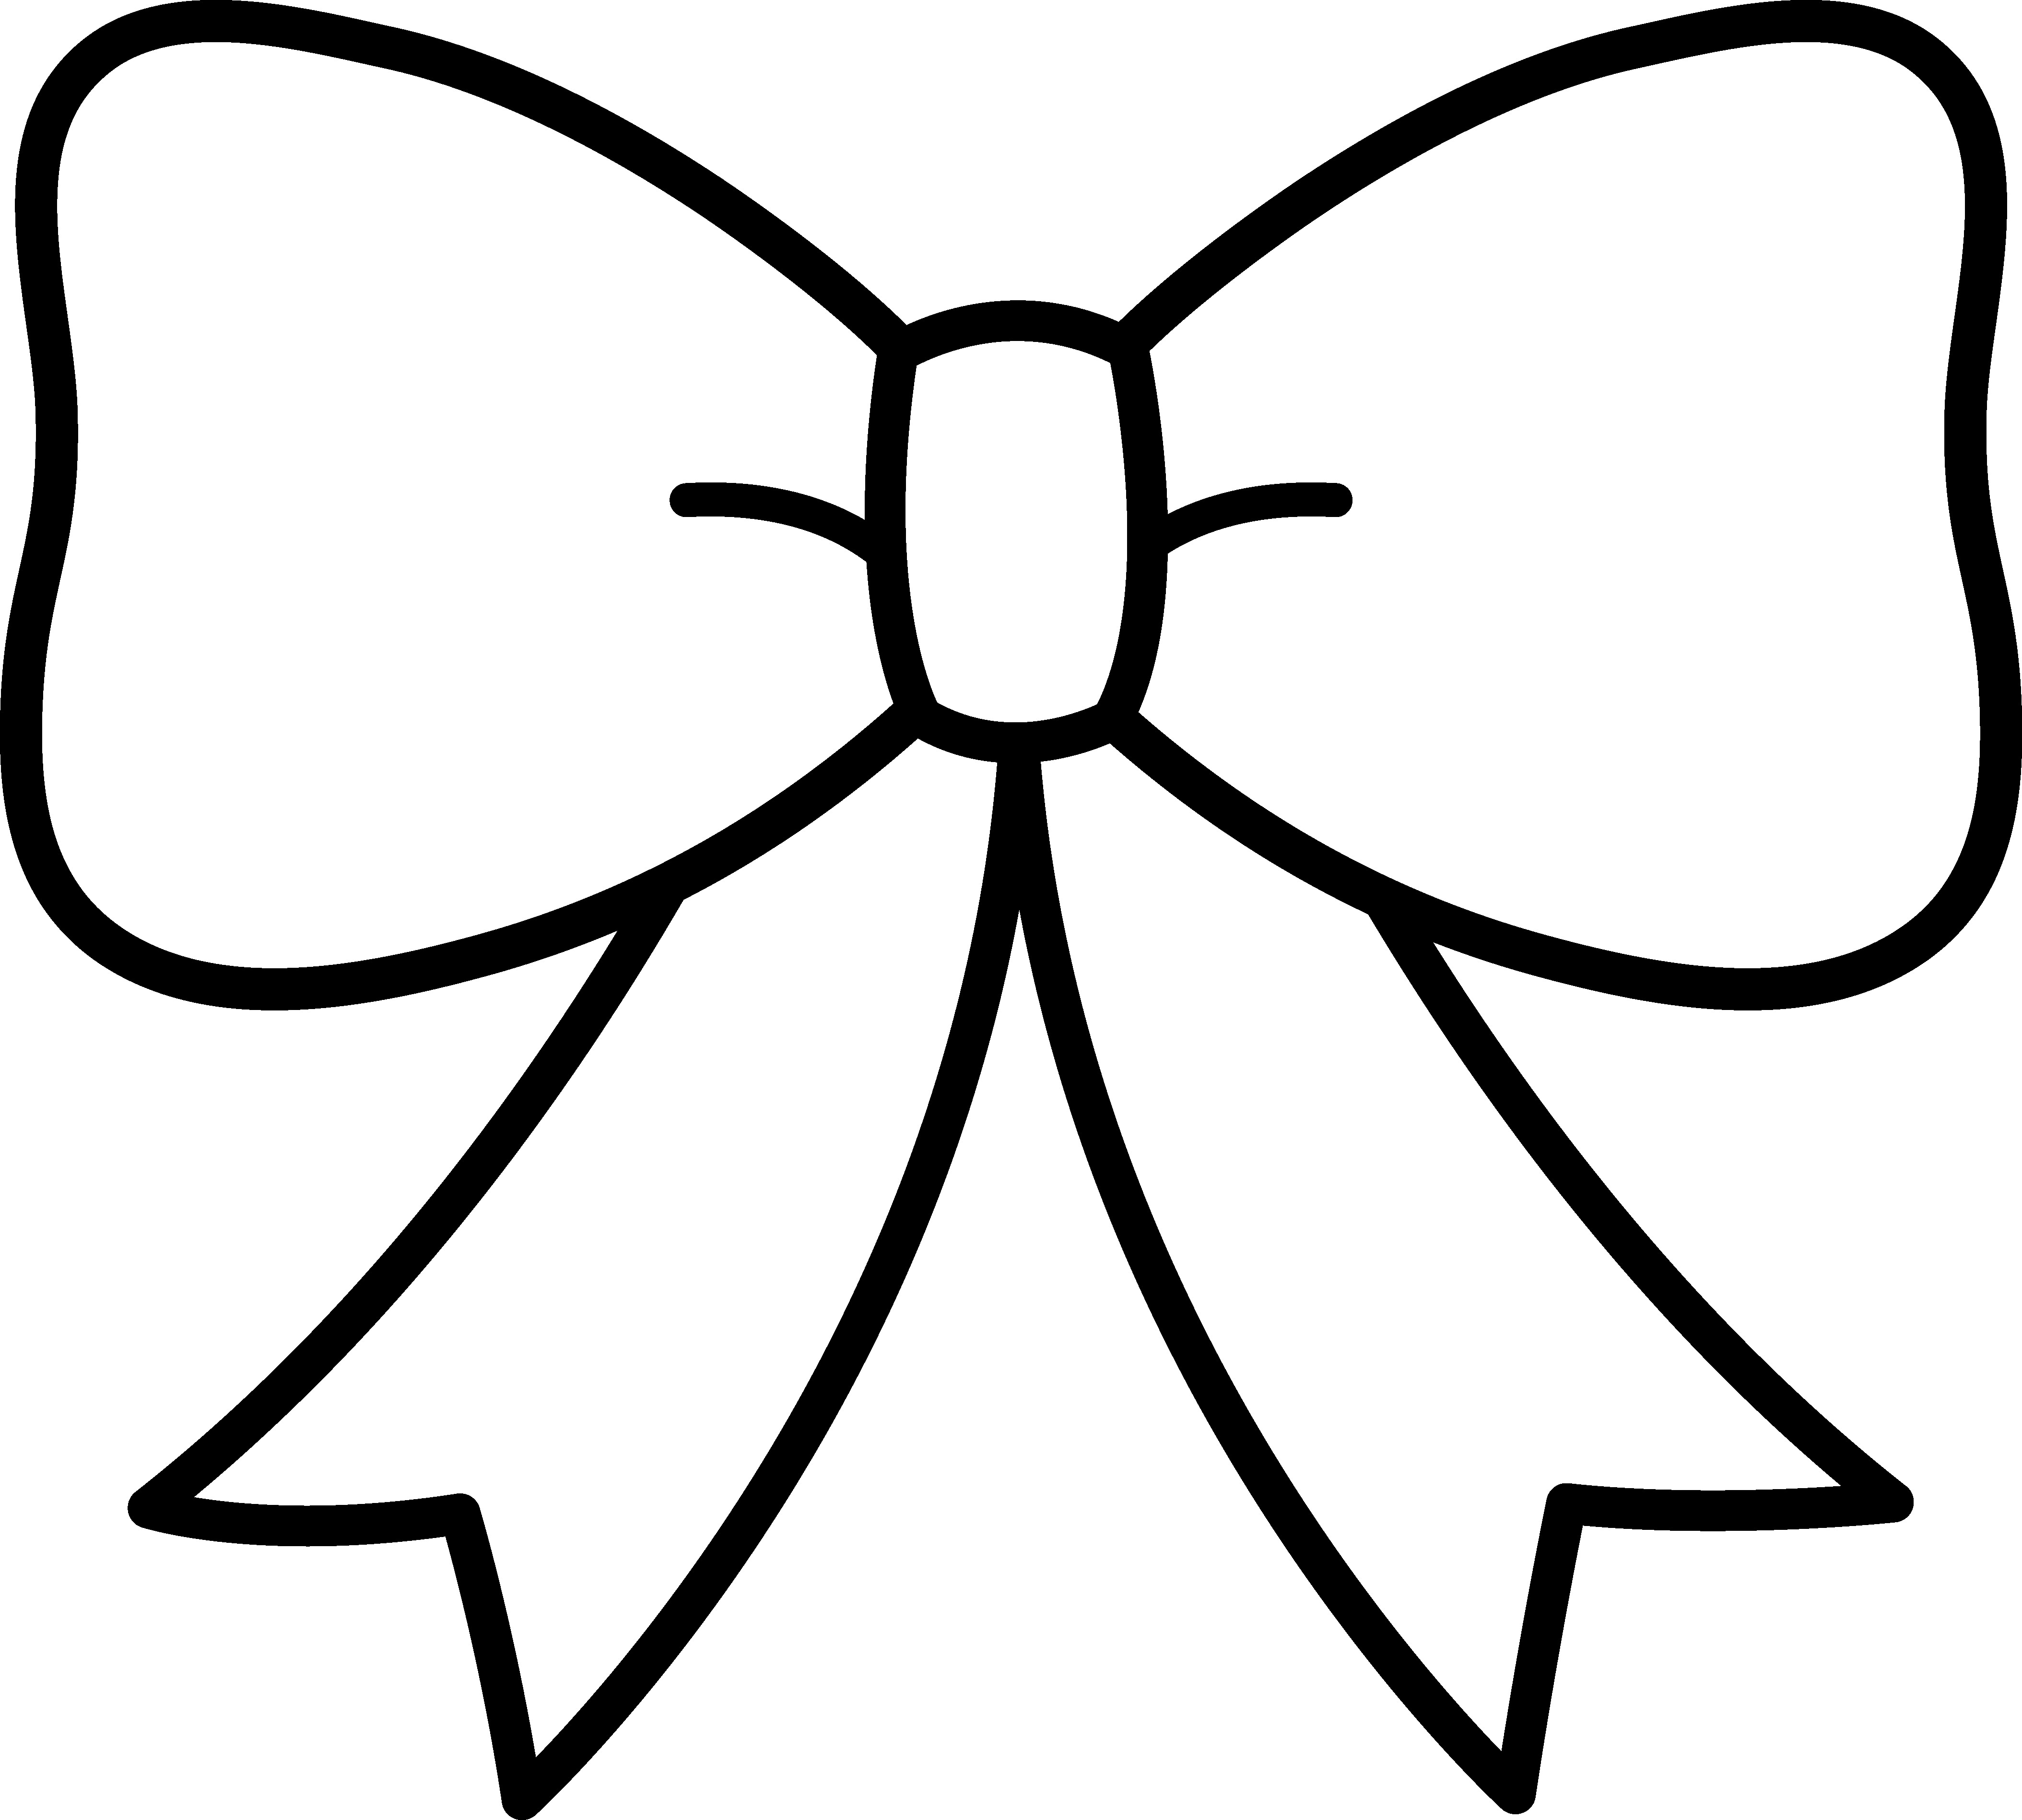 4216x3795 Black And White Bow Design